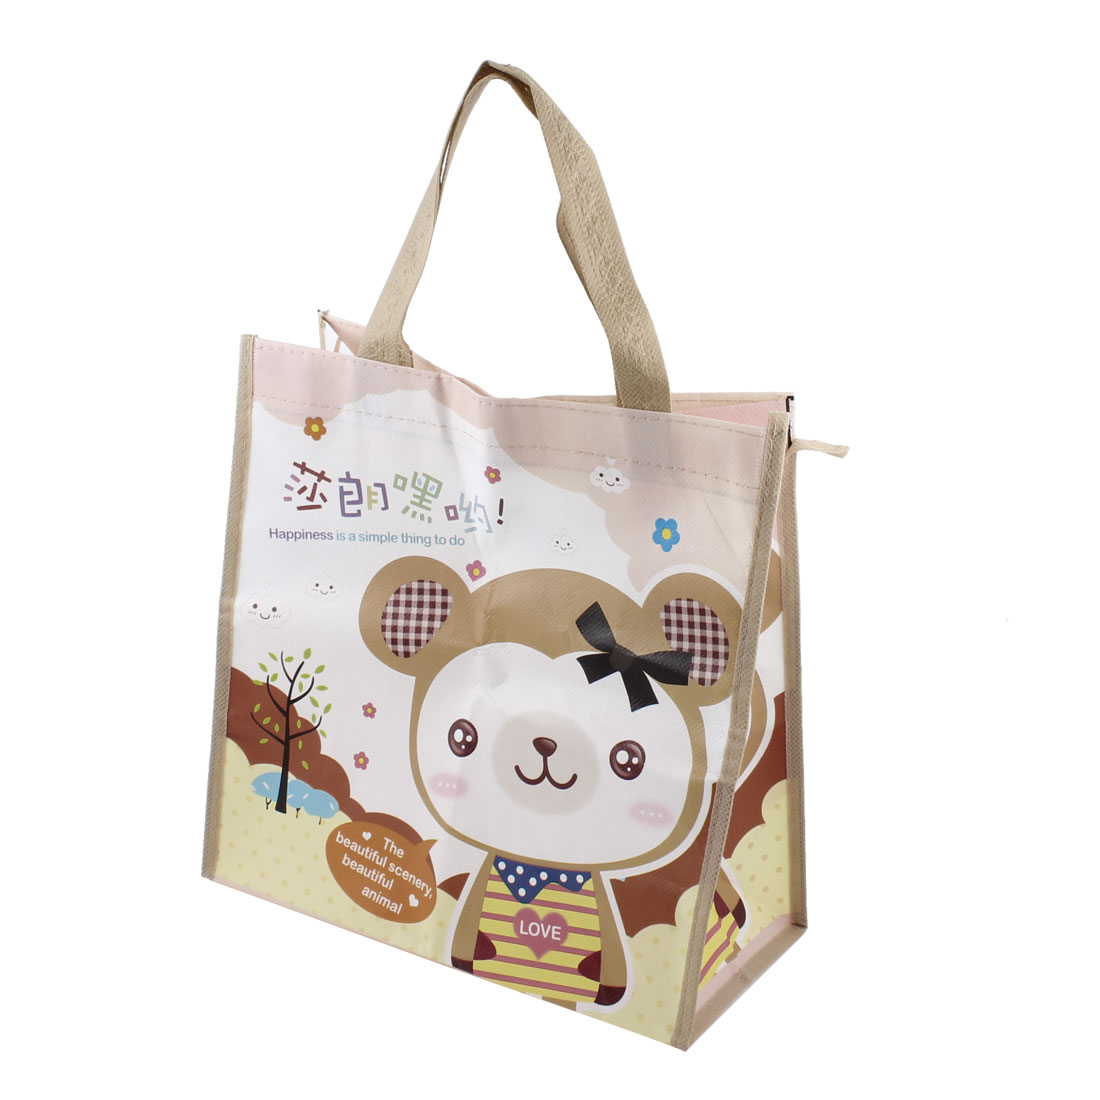 Hook Loop Fastener Foldable Cartoon Bear Pattern Shopping Tote Bag Brown White